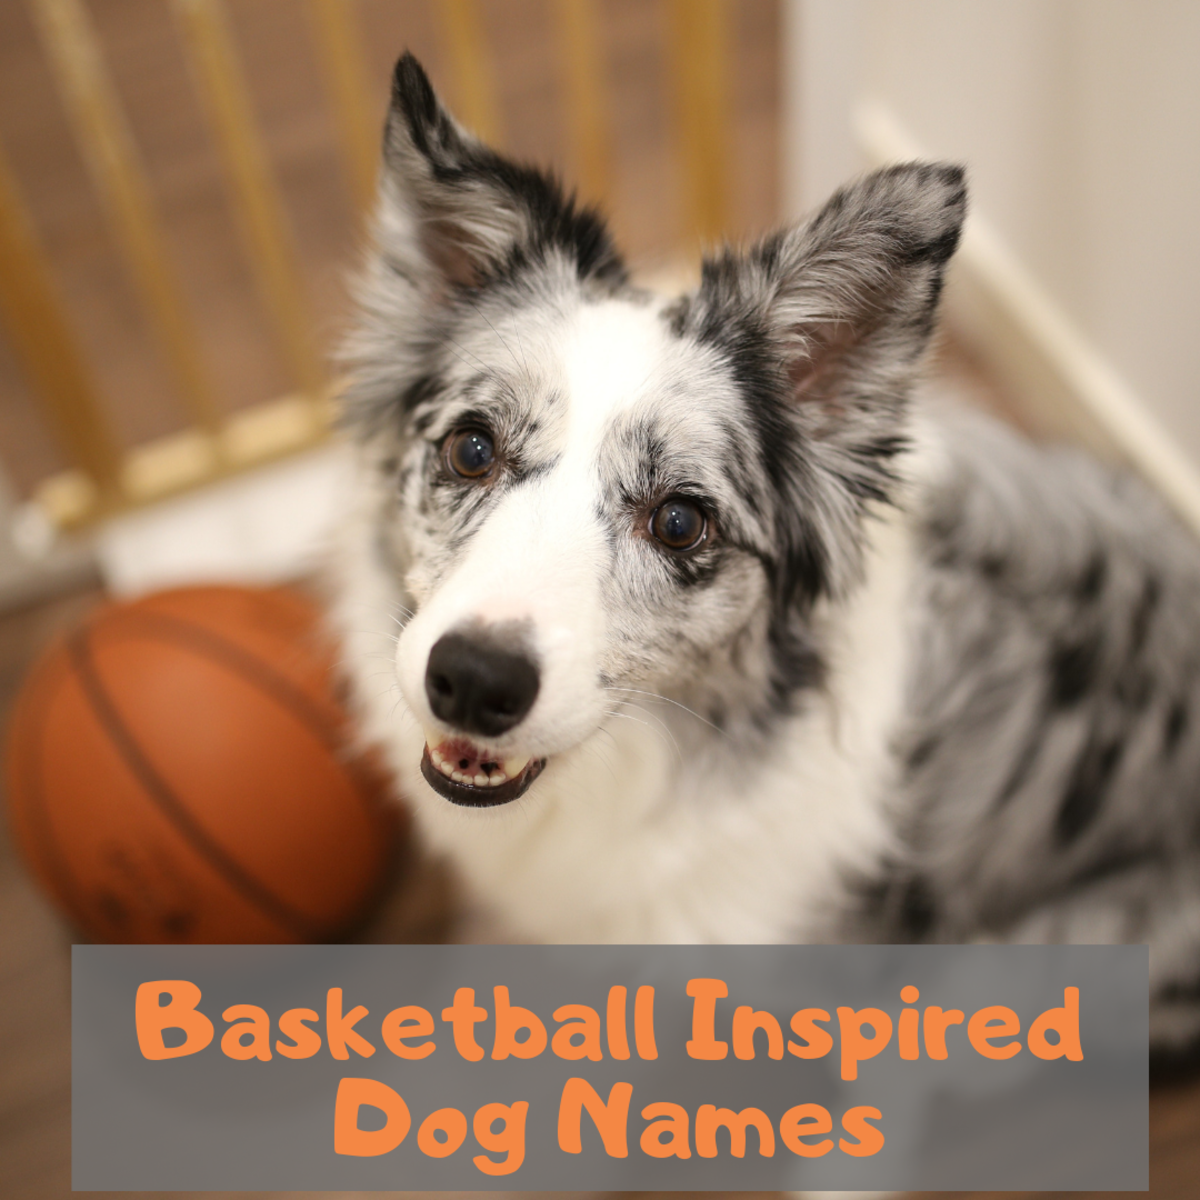 Dog names for basketball fans.